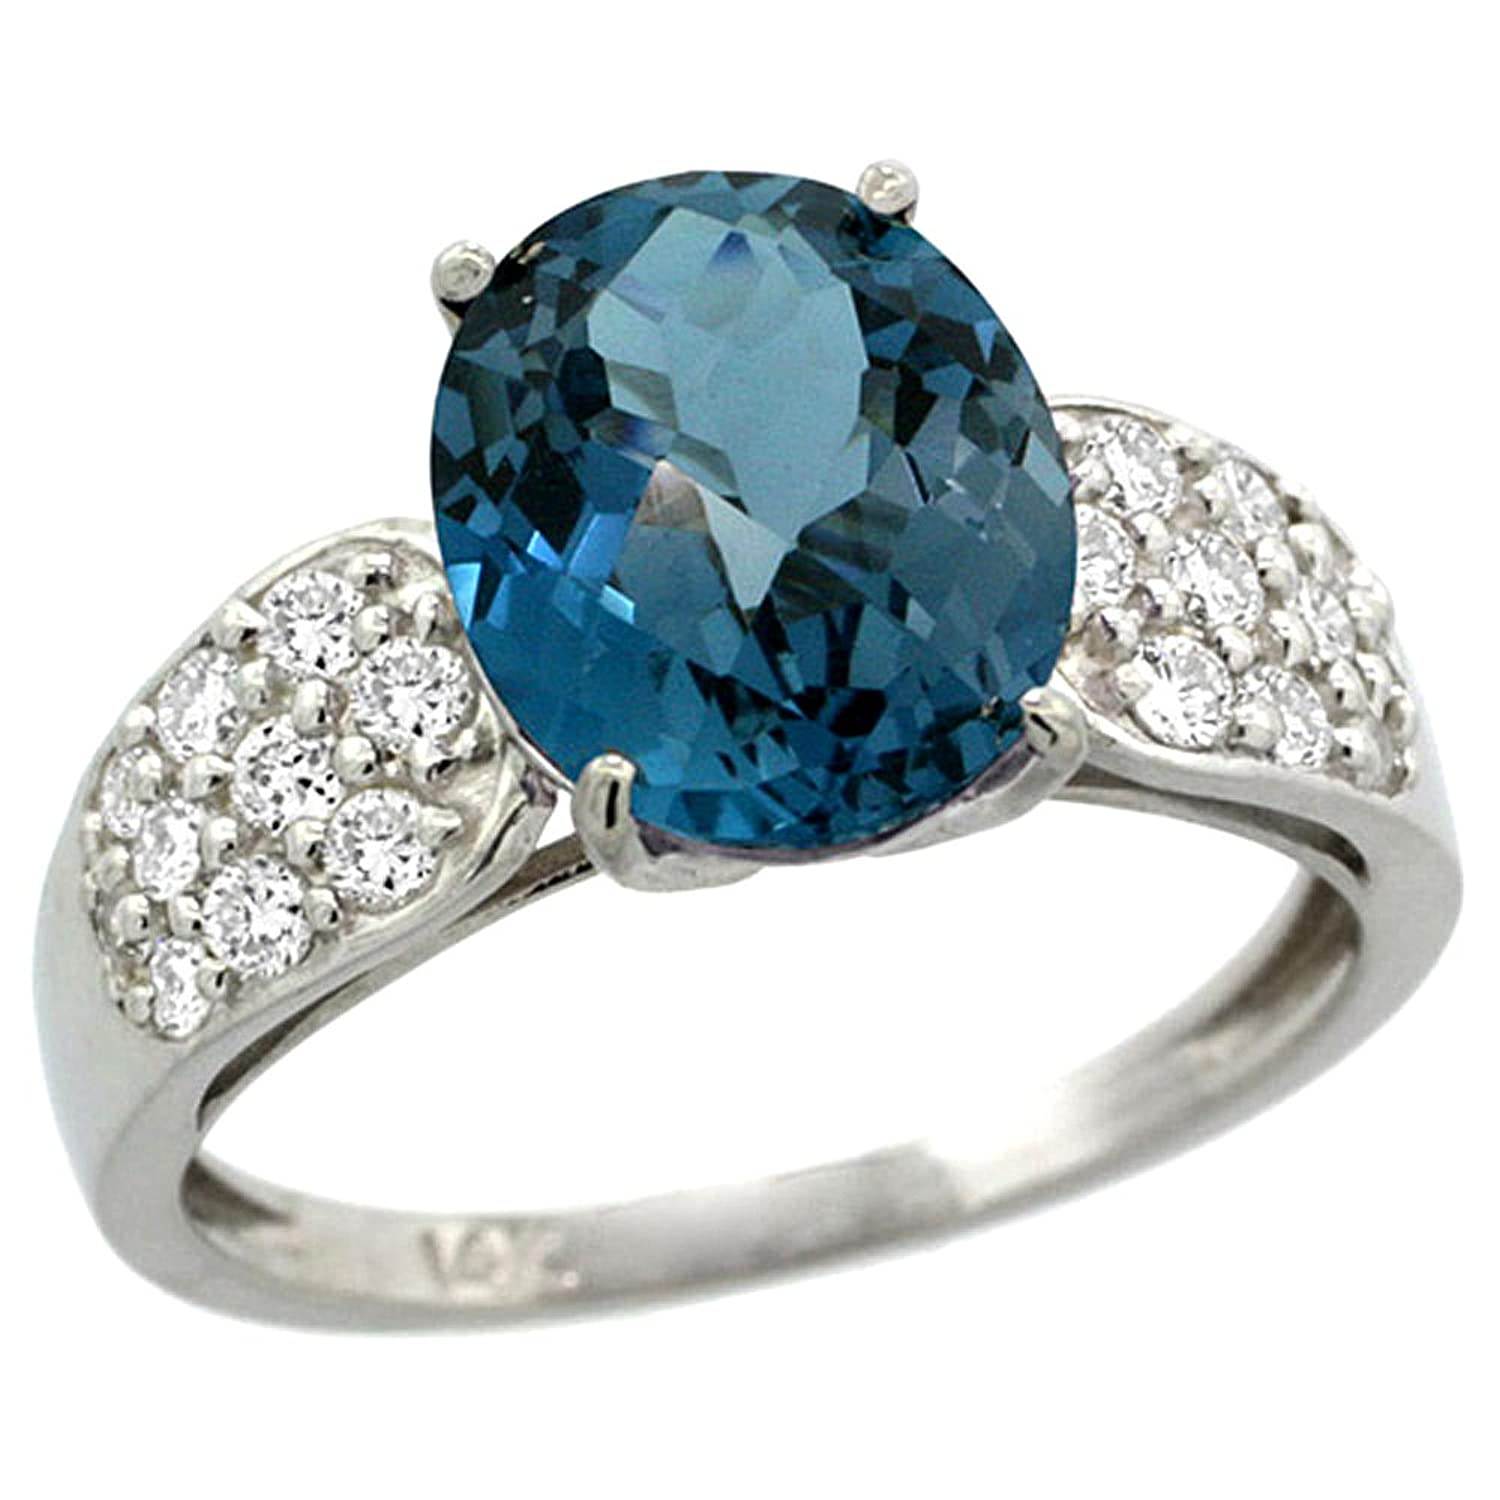 Amazon 14k White Gold Natural London Blue Topaz Ring Oval